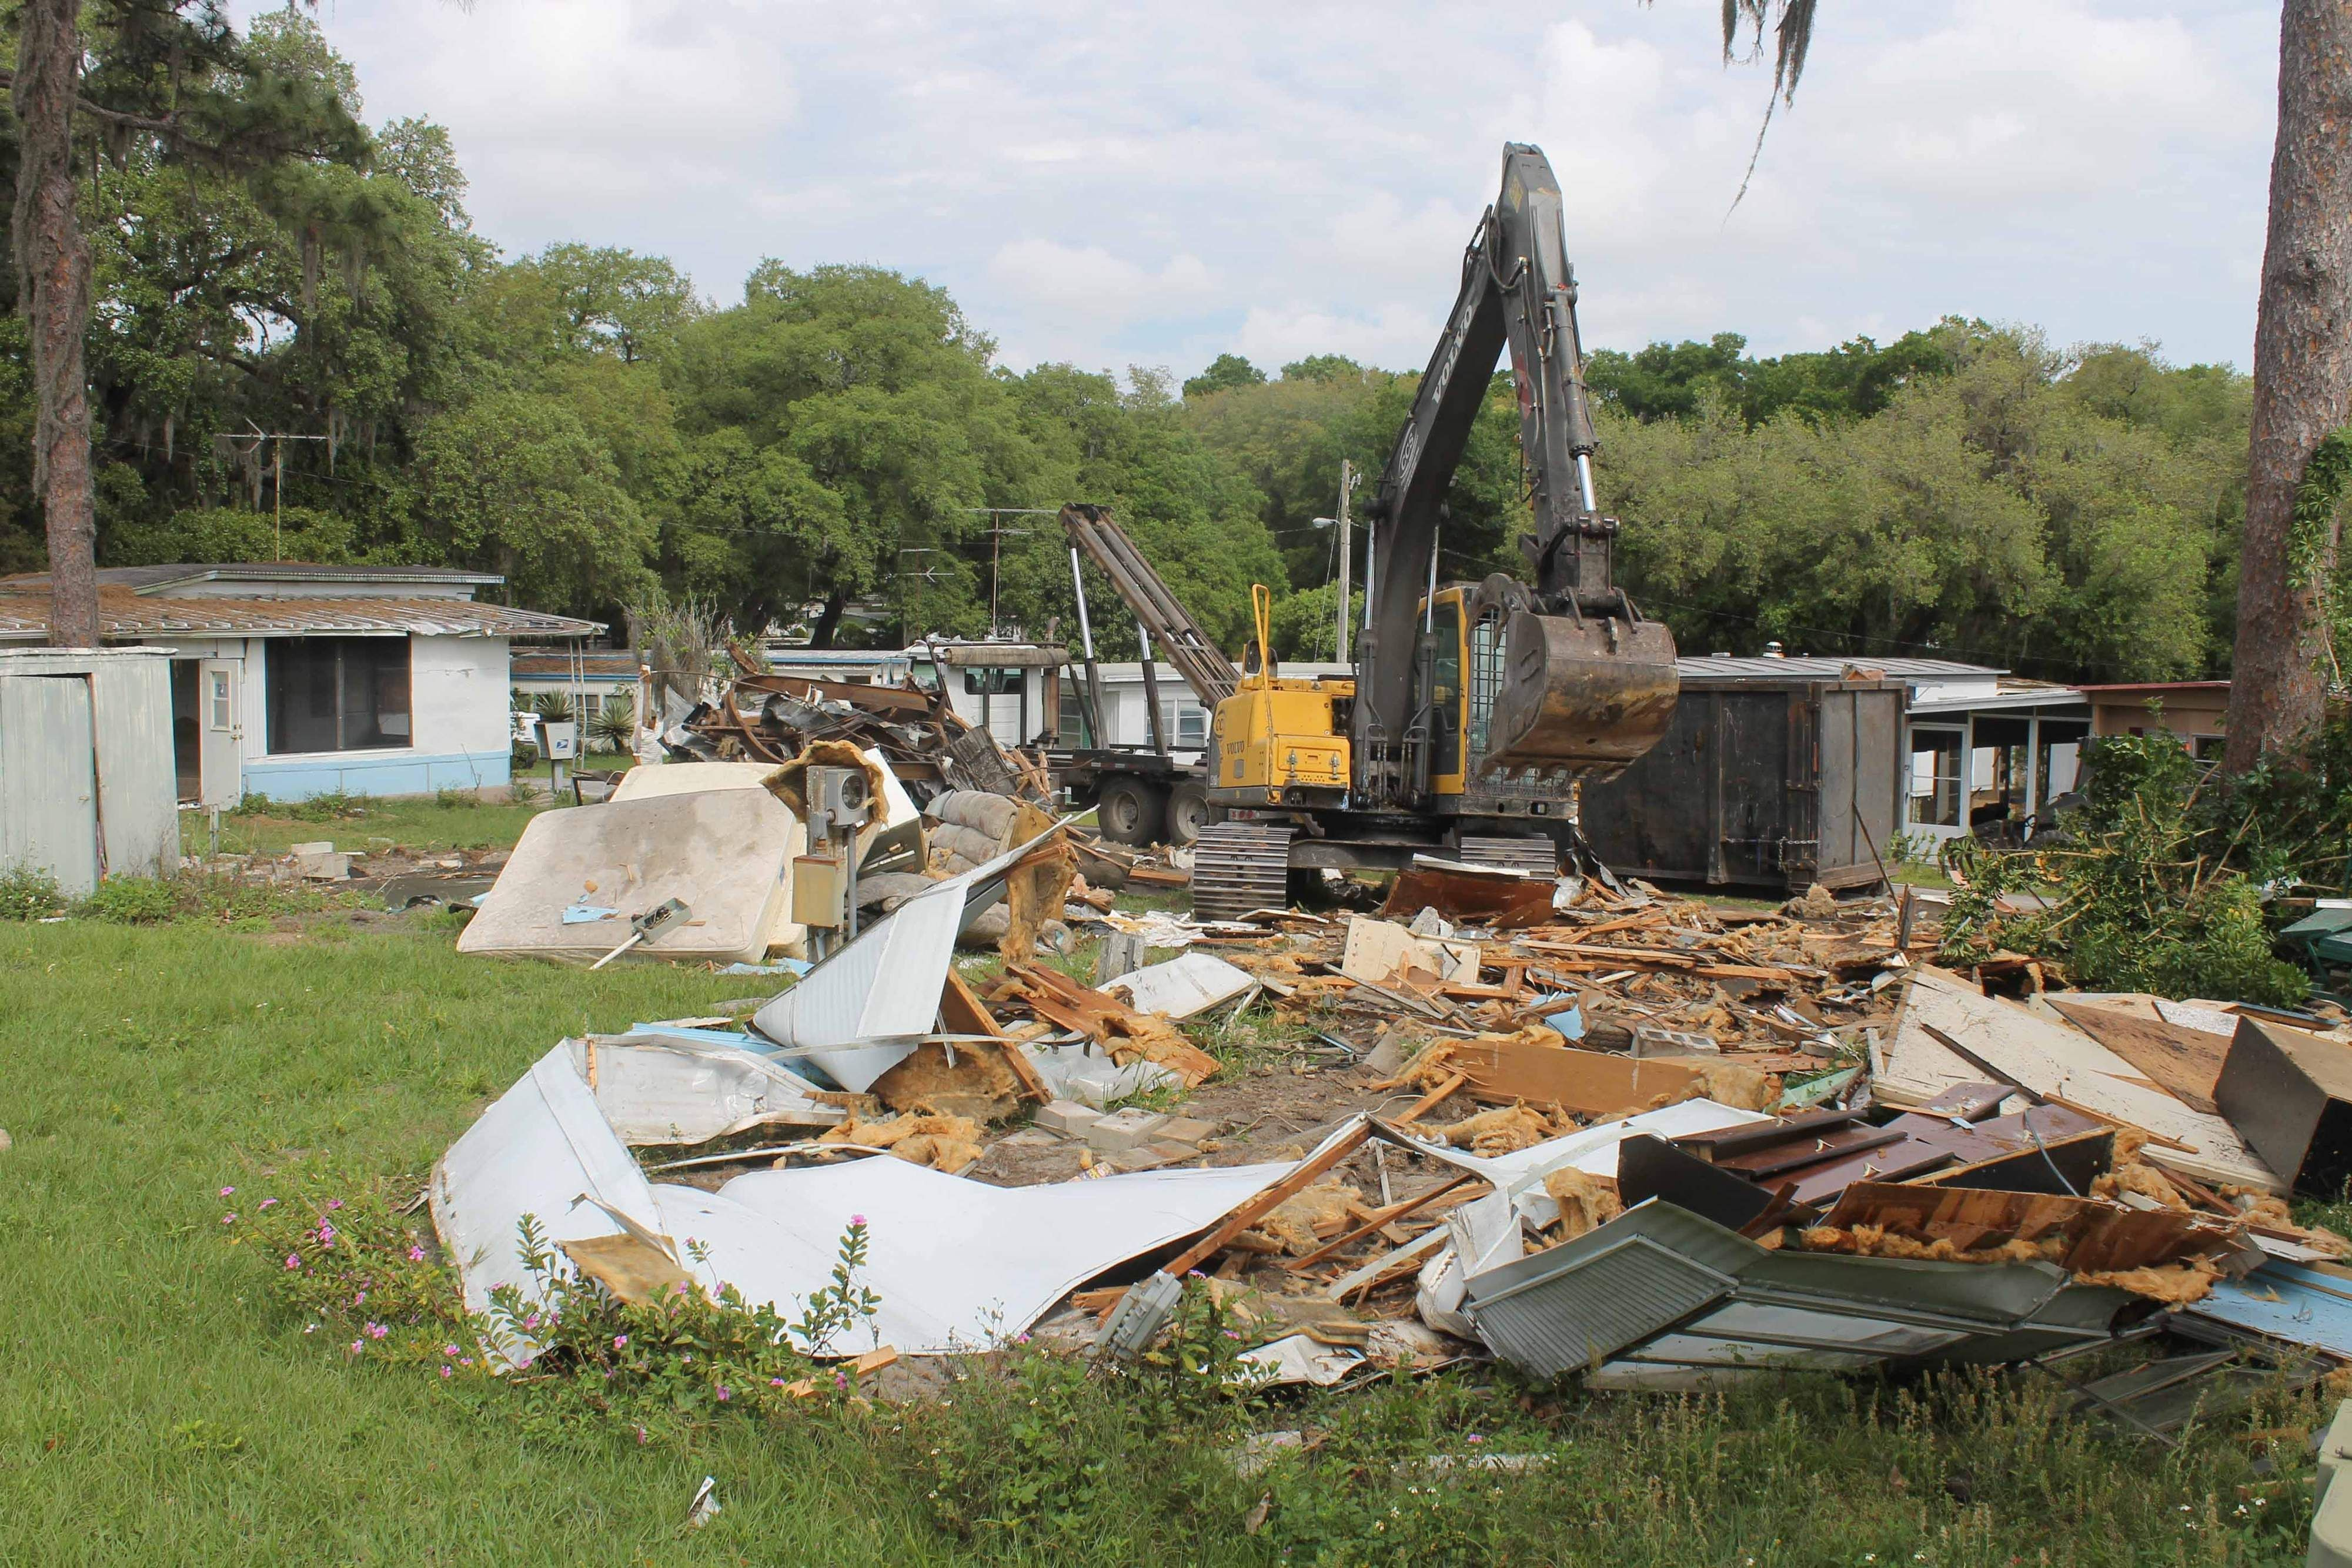 Mobile Home Demolition was completed! The House Trailer was located on countryside boston homes, countryside landscaping, countryside cottages, countryside churches, countryside sheds,